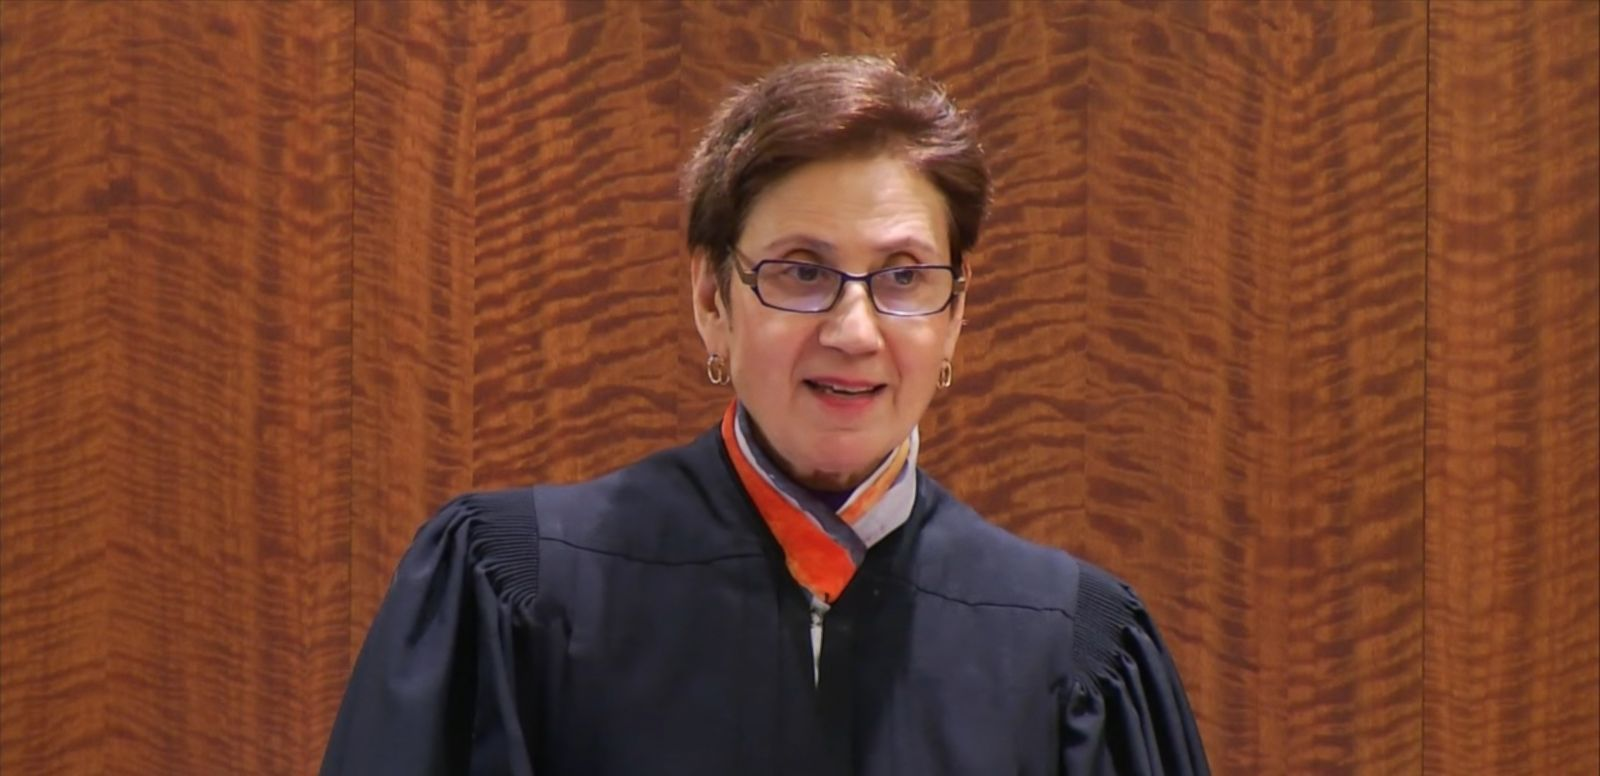 VIDEO: Judge Susan Garsh tells jurors to avoid anything related to the case if they attend Super Bowl gatherings.